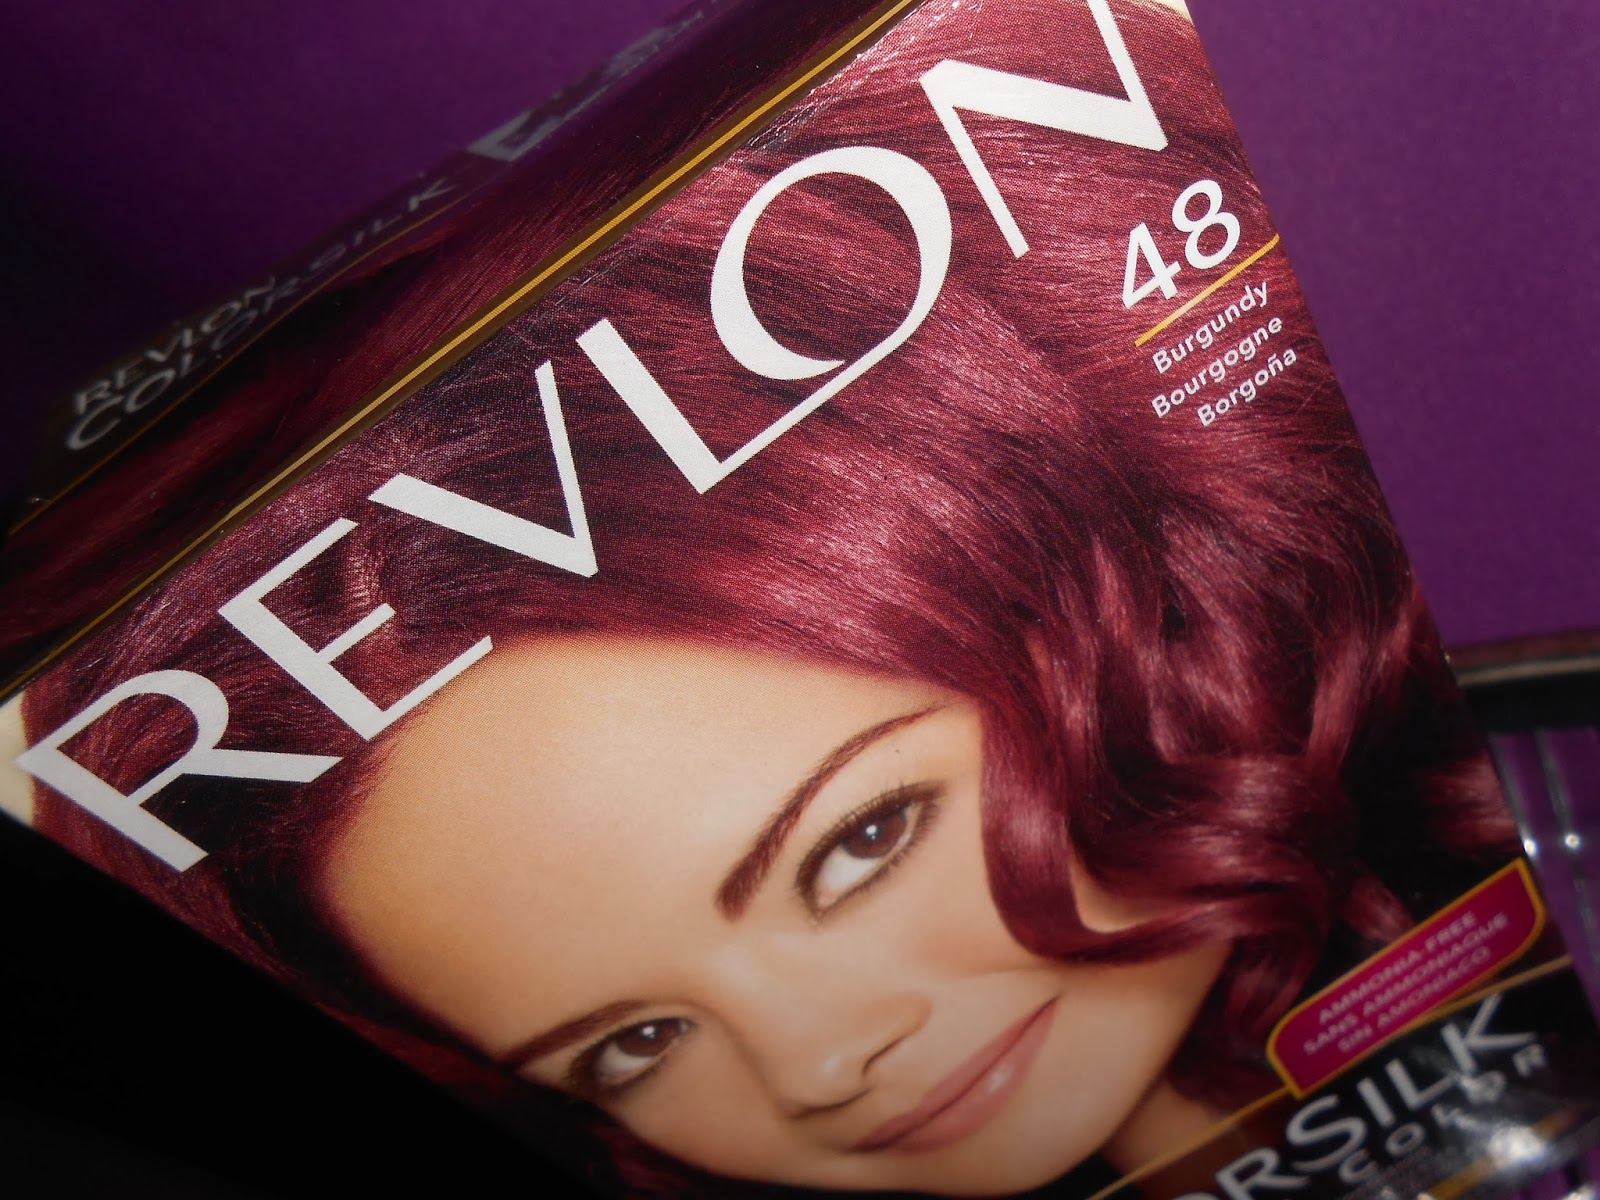 New hair color currently on my locks is revlon burgundy the best